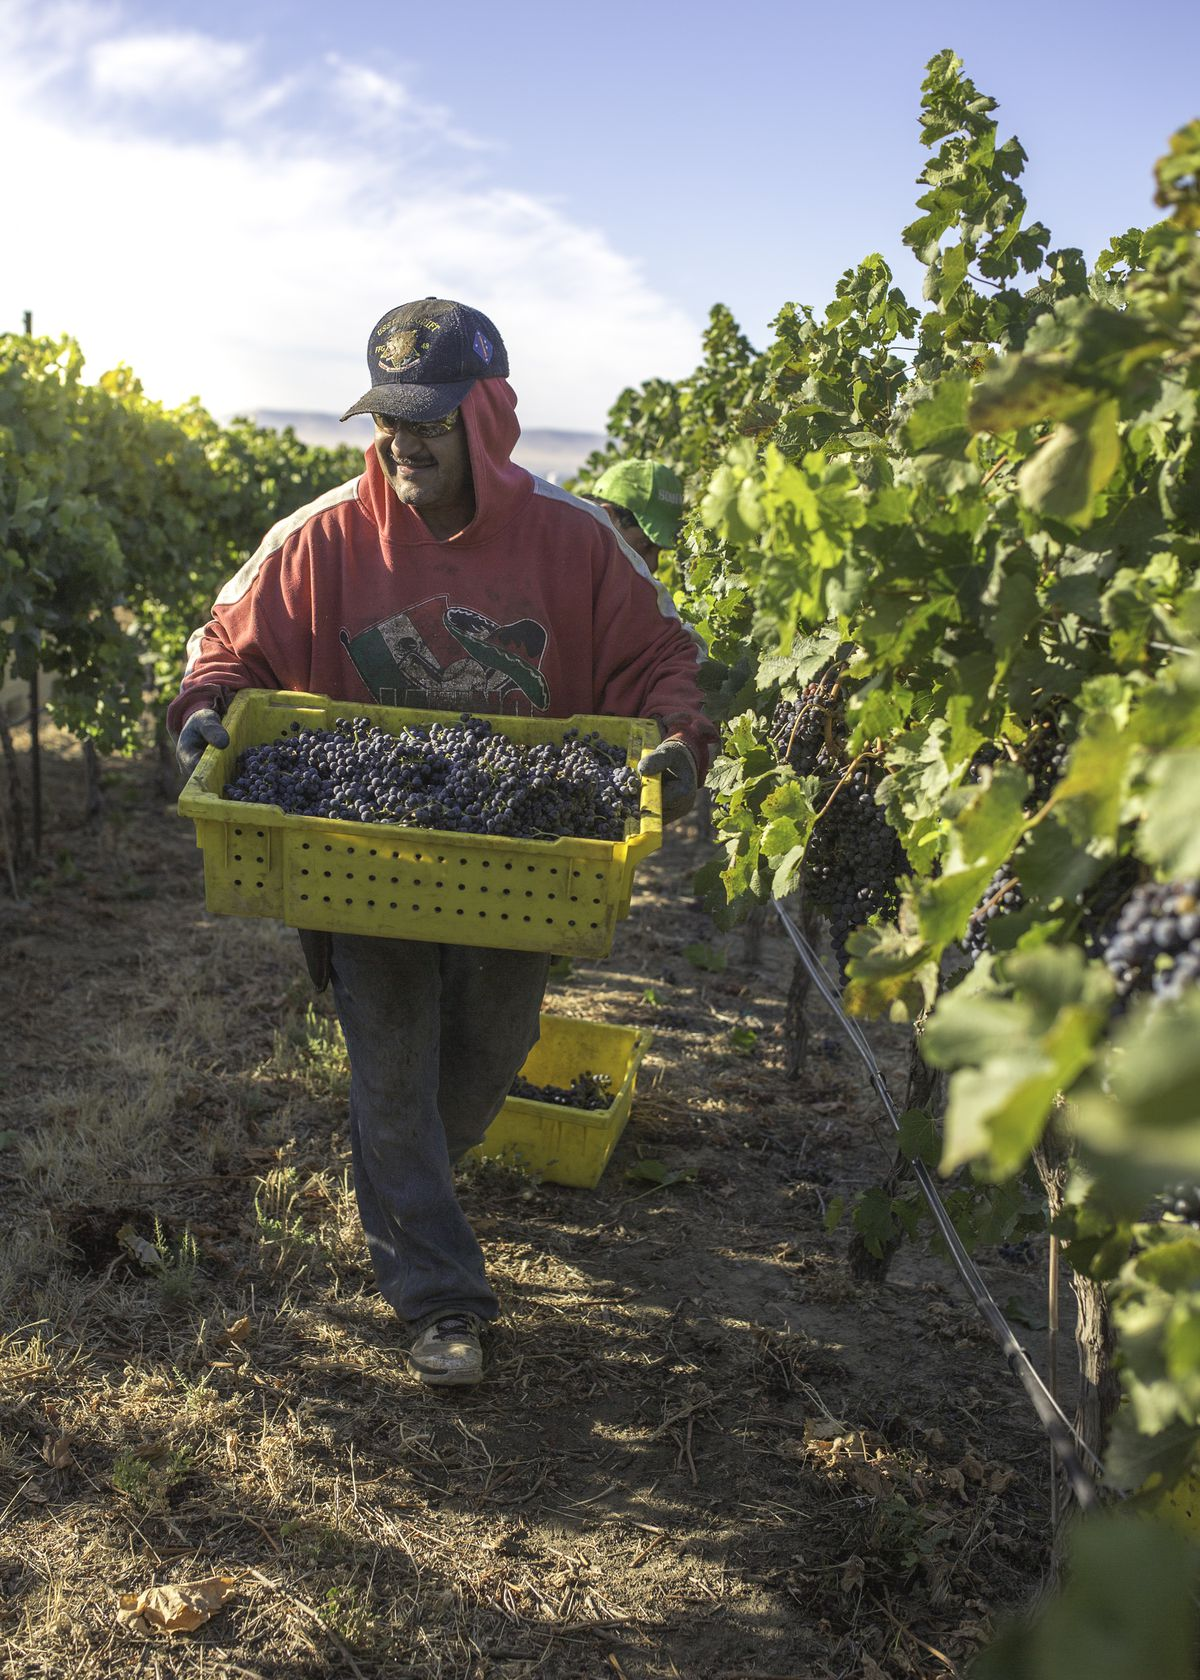 A man carries a tray of grapes in the field.